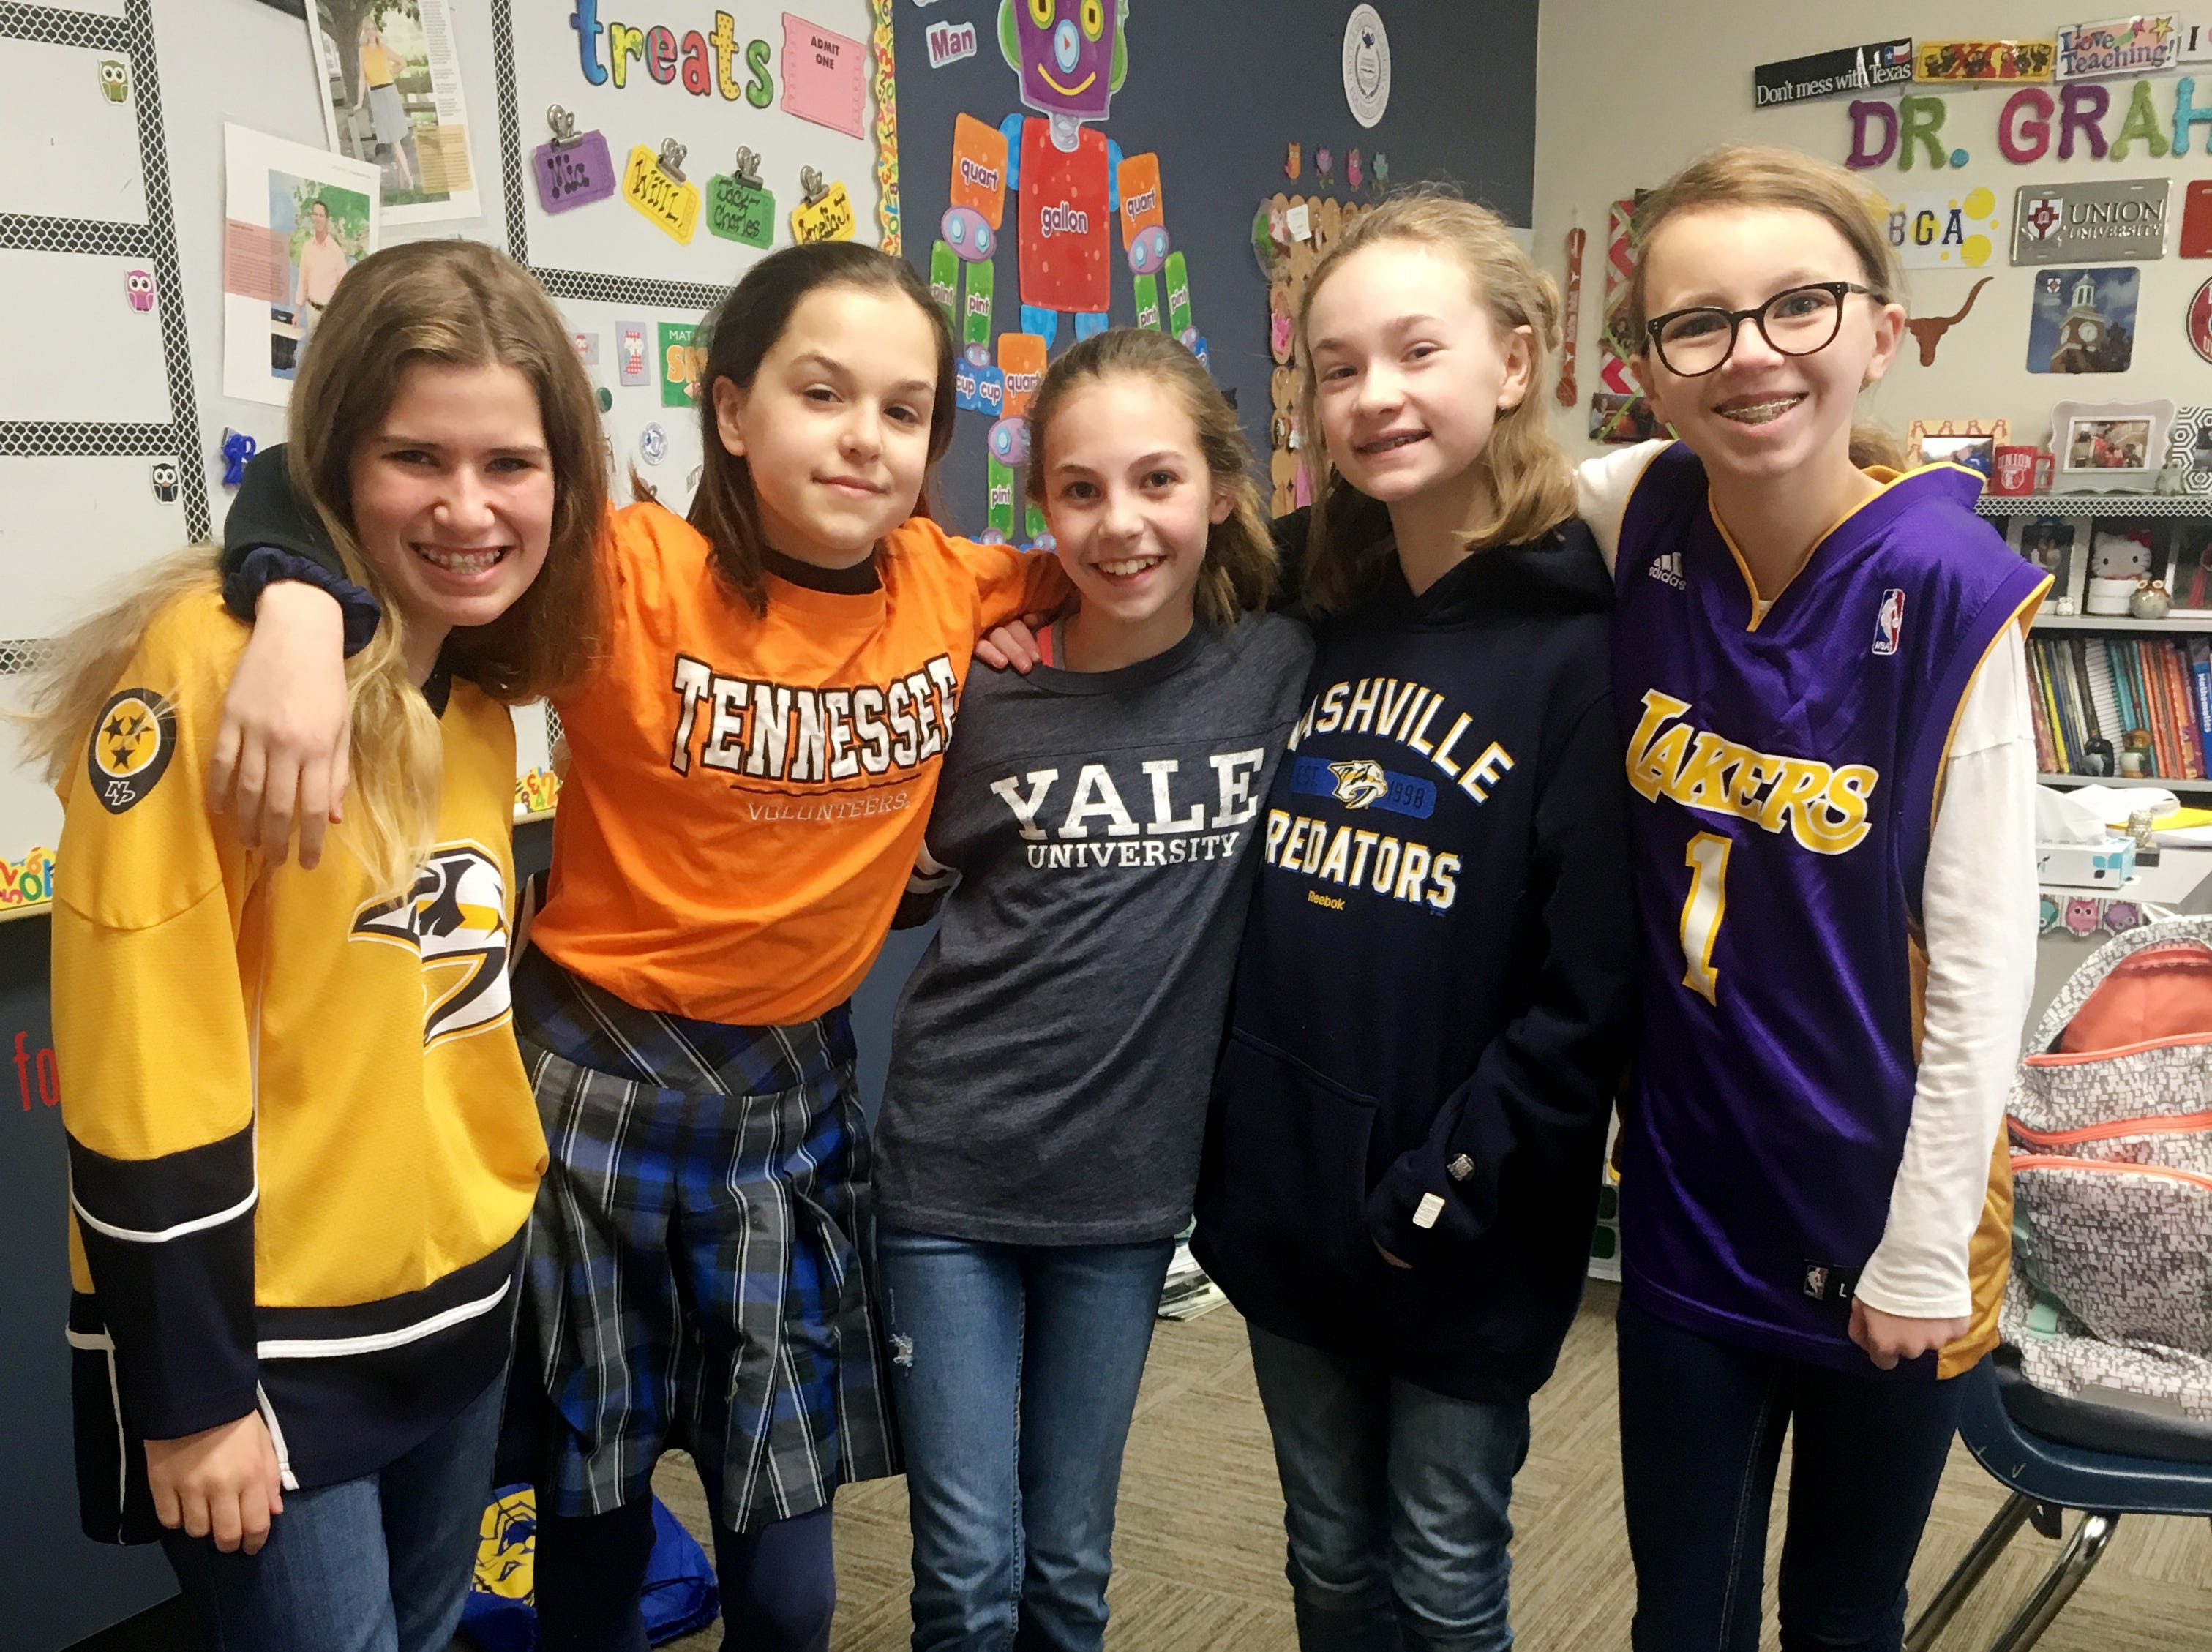 """""""Emma's Dollar Dress Down Days for the DRIVE (the Ms. Cheap Penny Drive, that is!)""""  - COLLECTED: $717.35. Proposed by Emma Kramer, who is in """"Yale"""" shirt for """"Quarters for Quarterbacks"""" day. Left to right...Isabella Besco, Mia Hawkersmith, Emma Kramer, Addison Irvin, and Sophia Grimsley."""